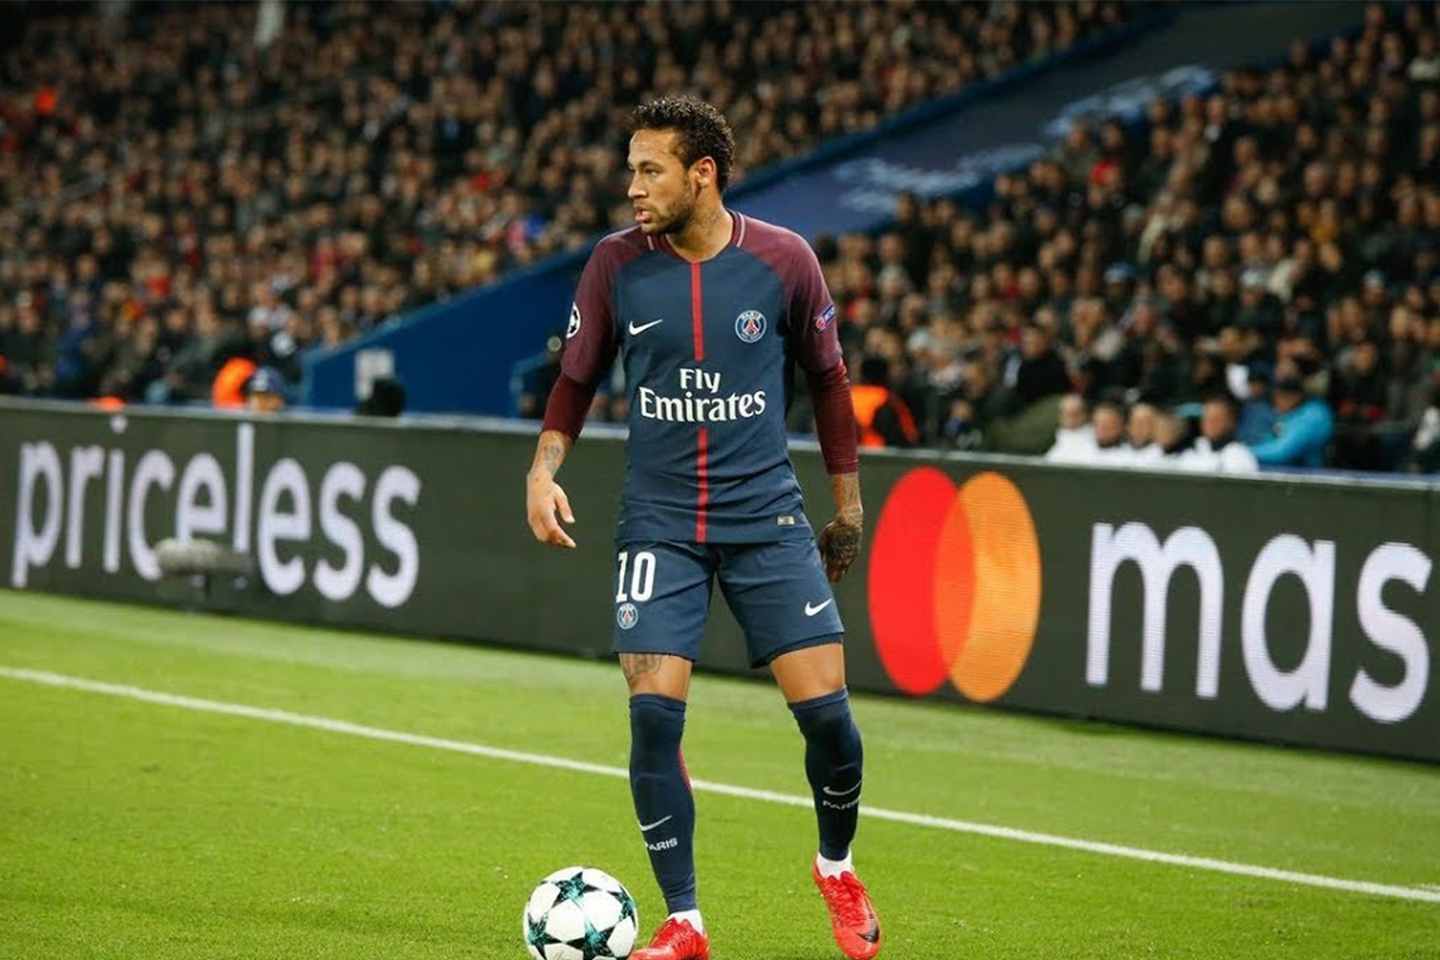 No Regreso Al Psg Es Irreversible Neymar Jr Futbolero